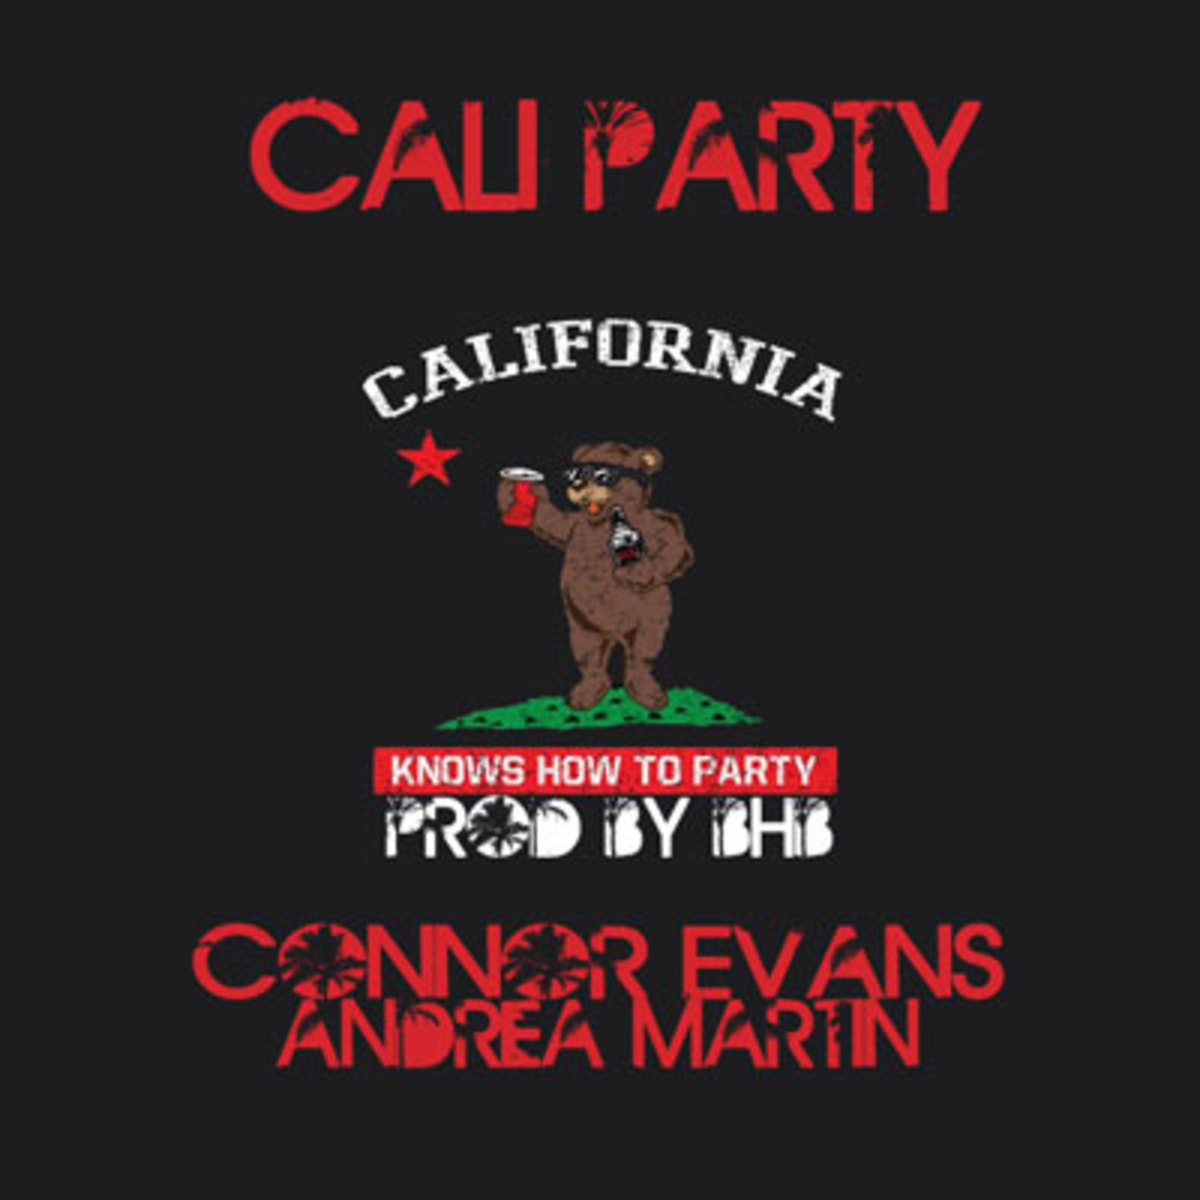 connorevans-caliparty.jpg